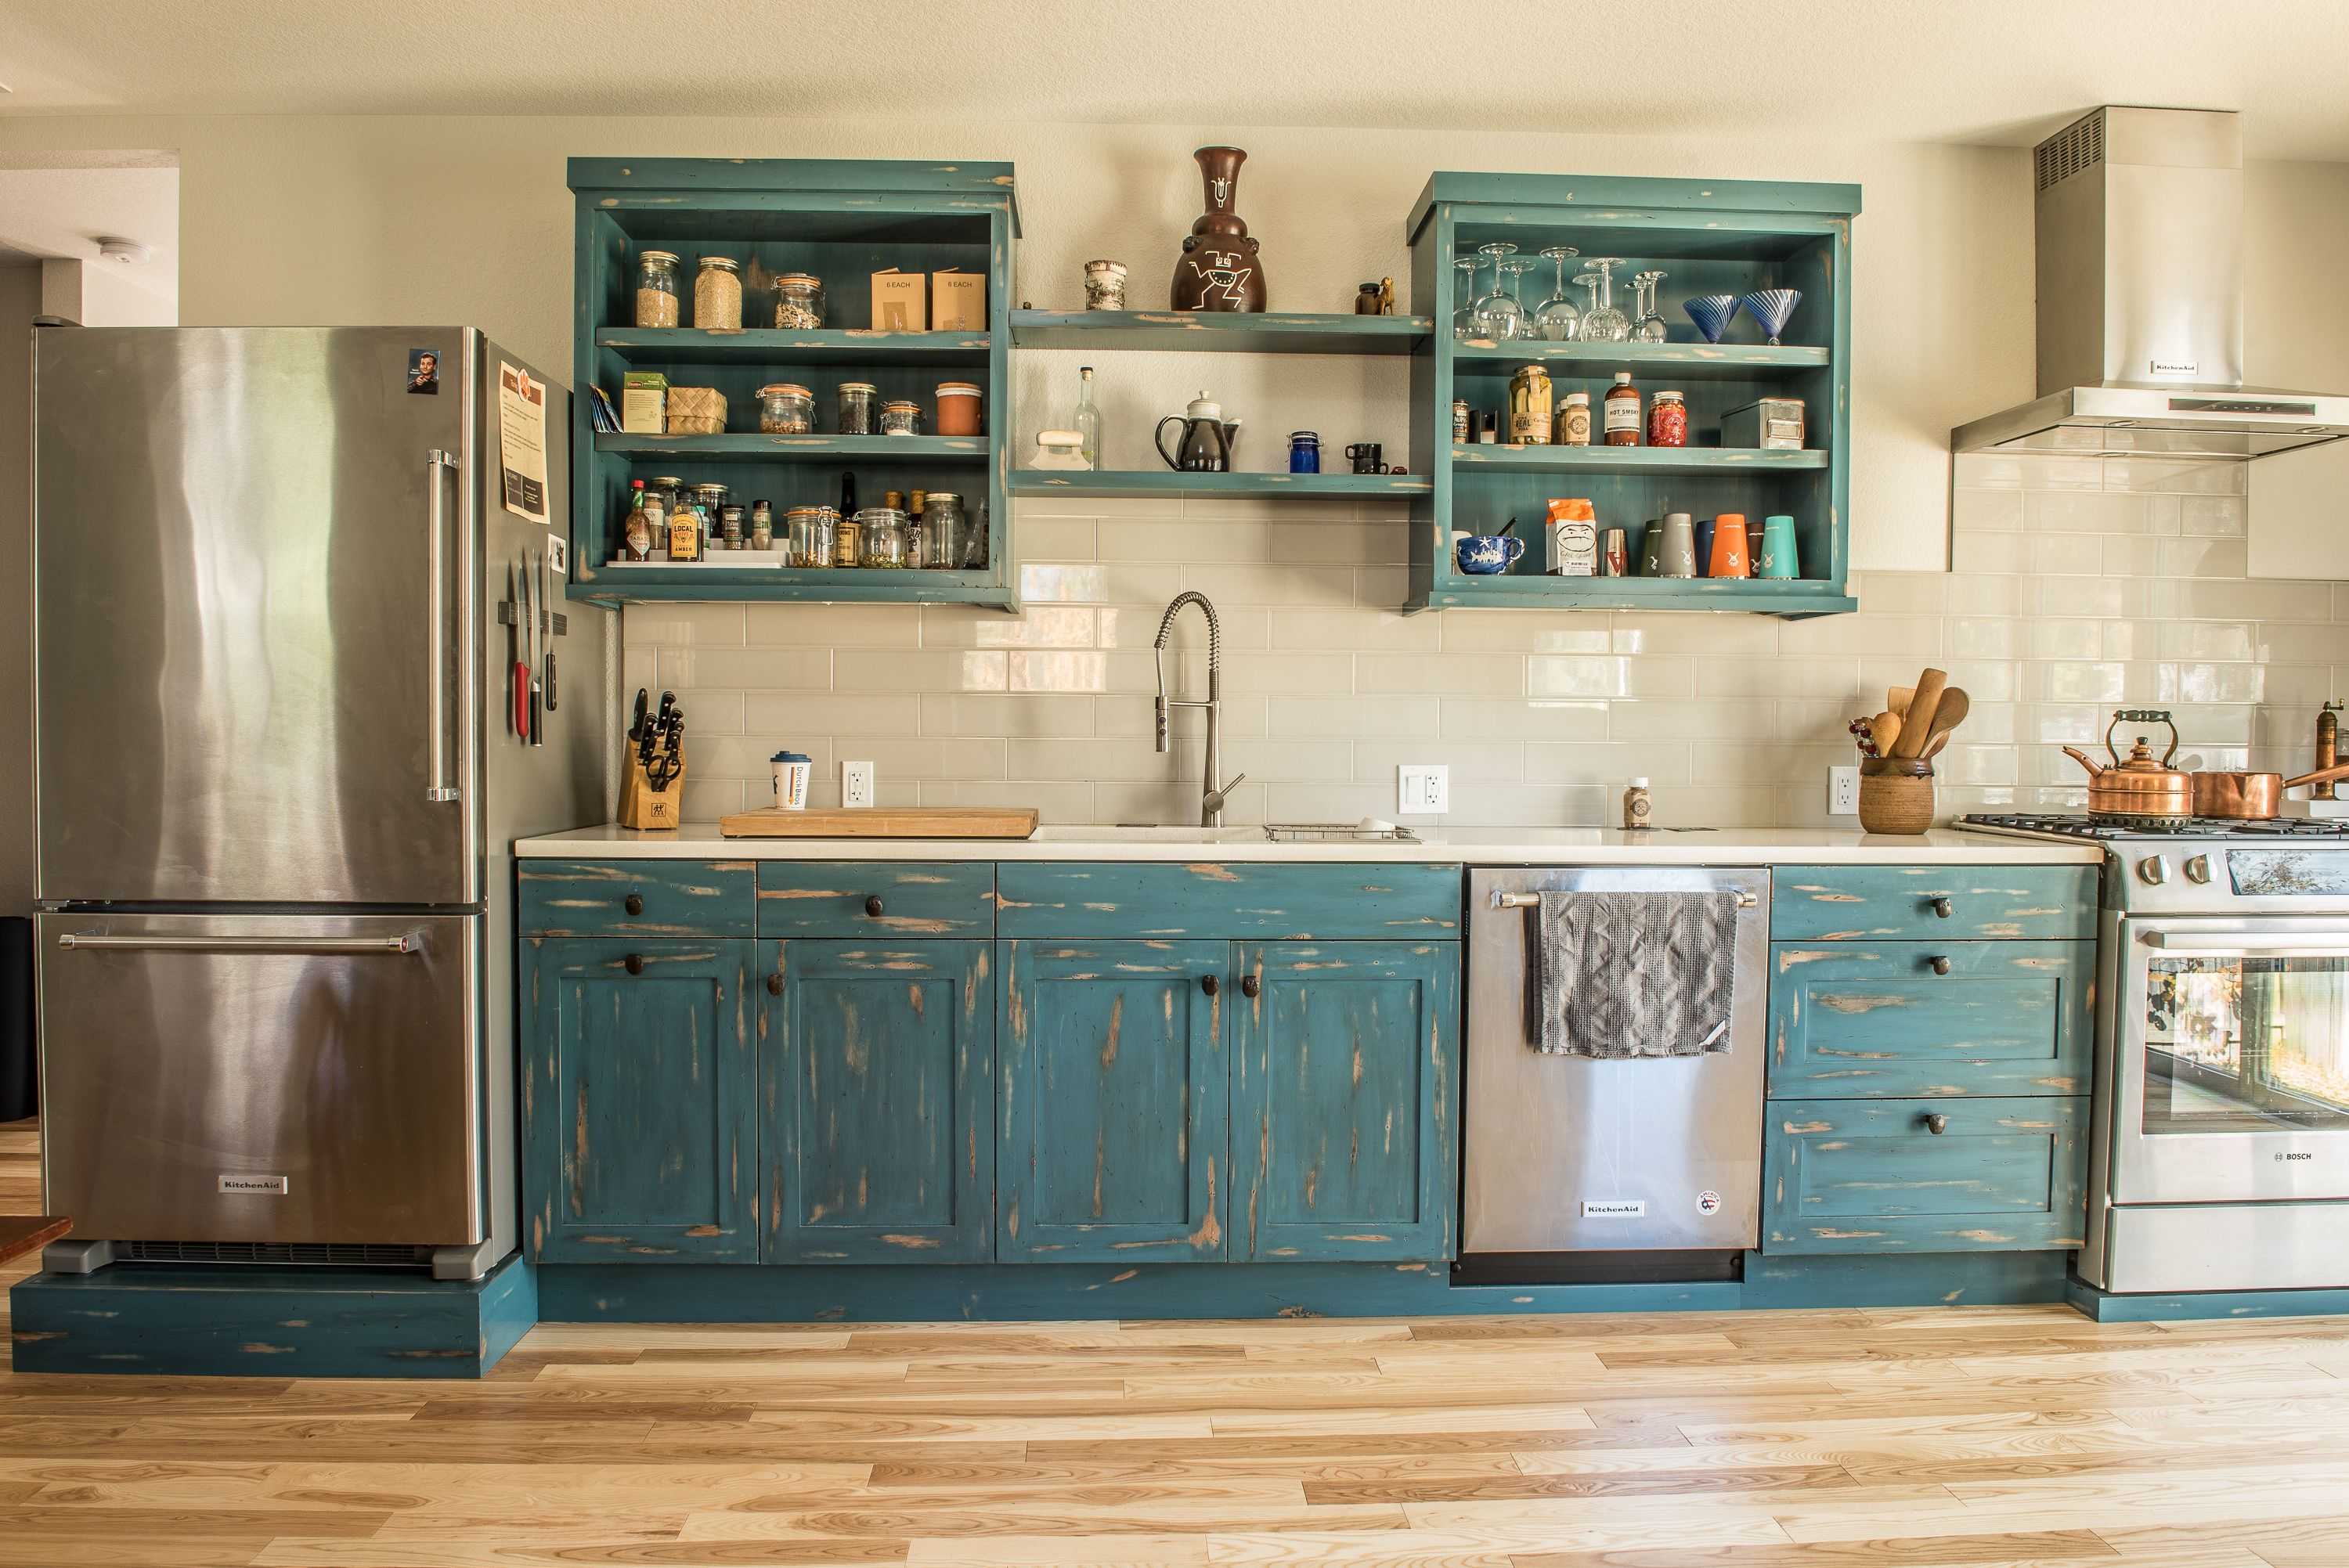 Galley Kitchen W Distressed Teal Cabinets Rail Road Spike Pulls Teal Cabinets Kitchen Galley Kitchen